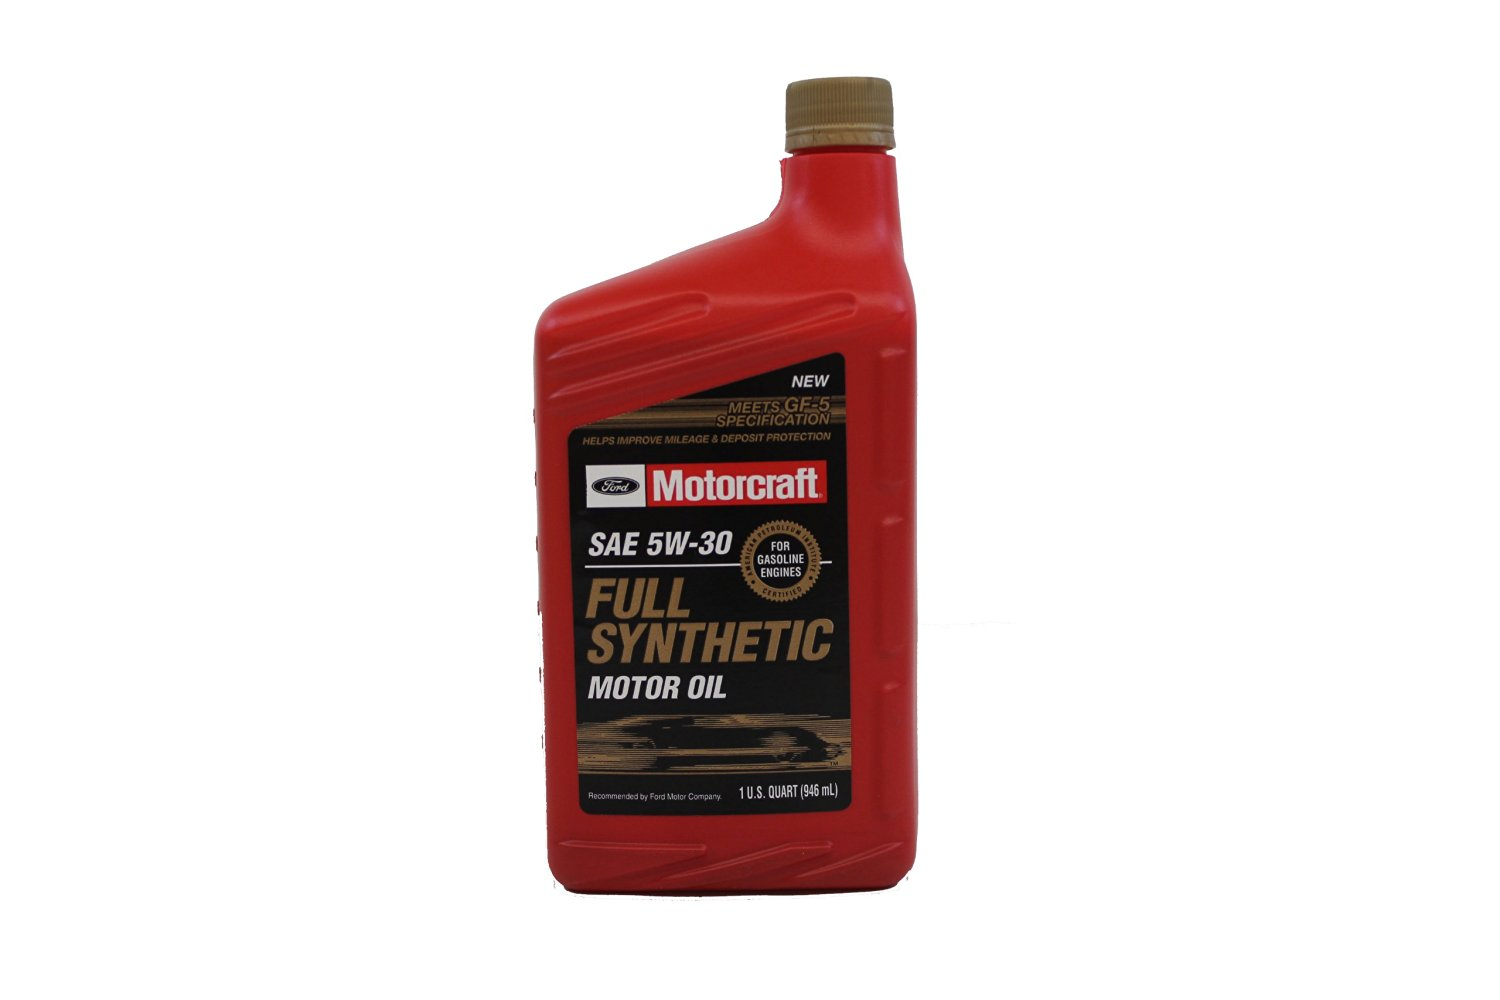 Genuine Ford Fluid XO-5W30-QFS SAE 5W-30 Full Synthetic Motor Oil - 1 Quart Bottle